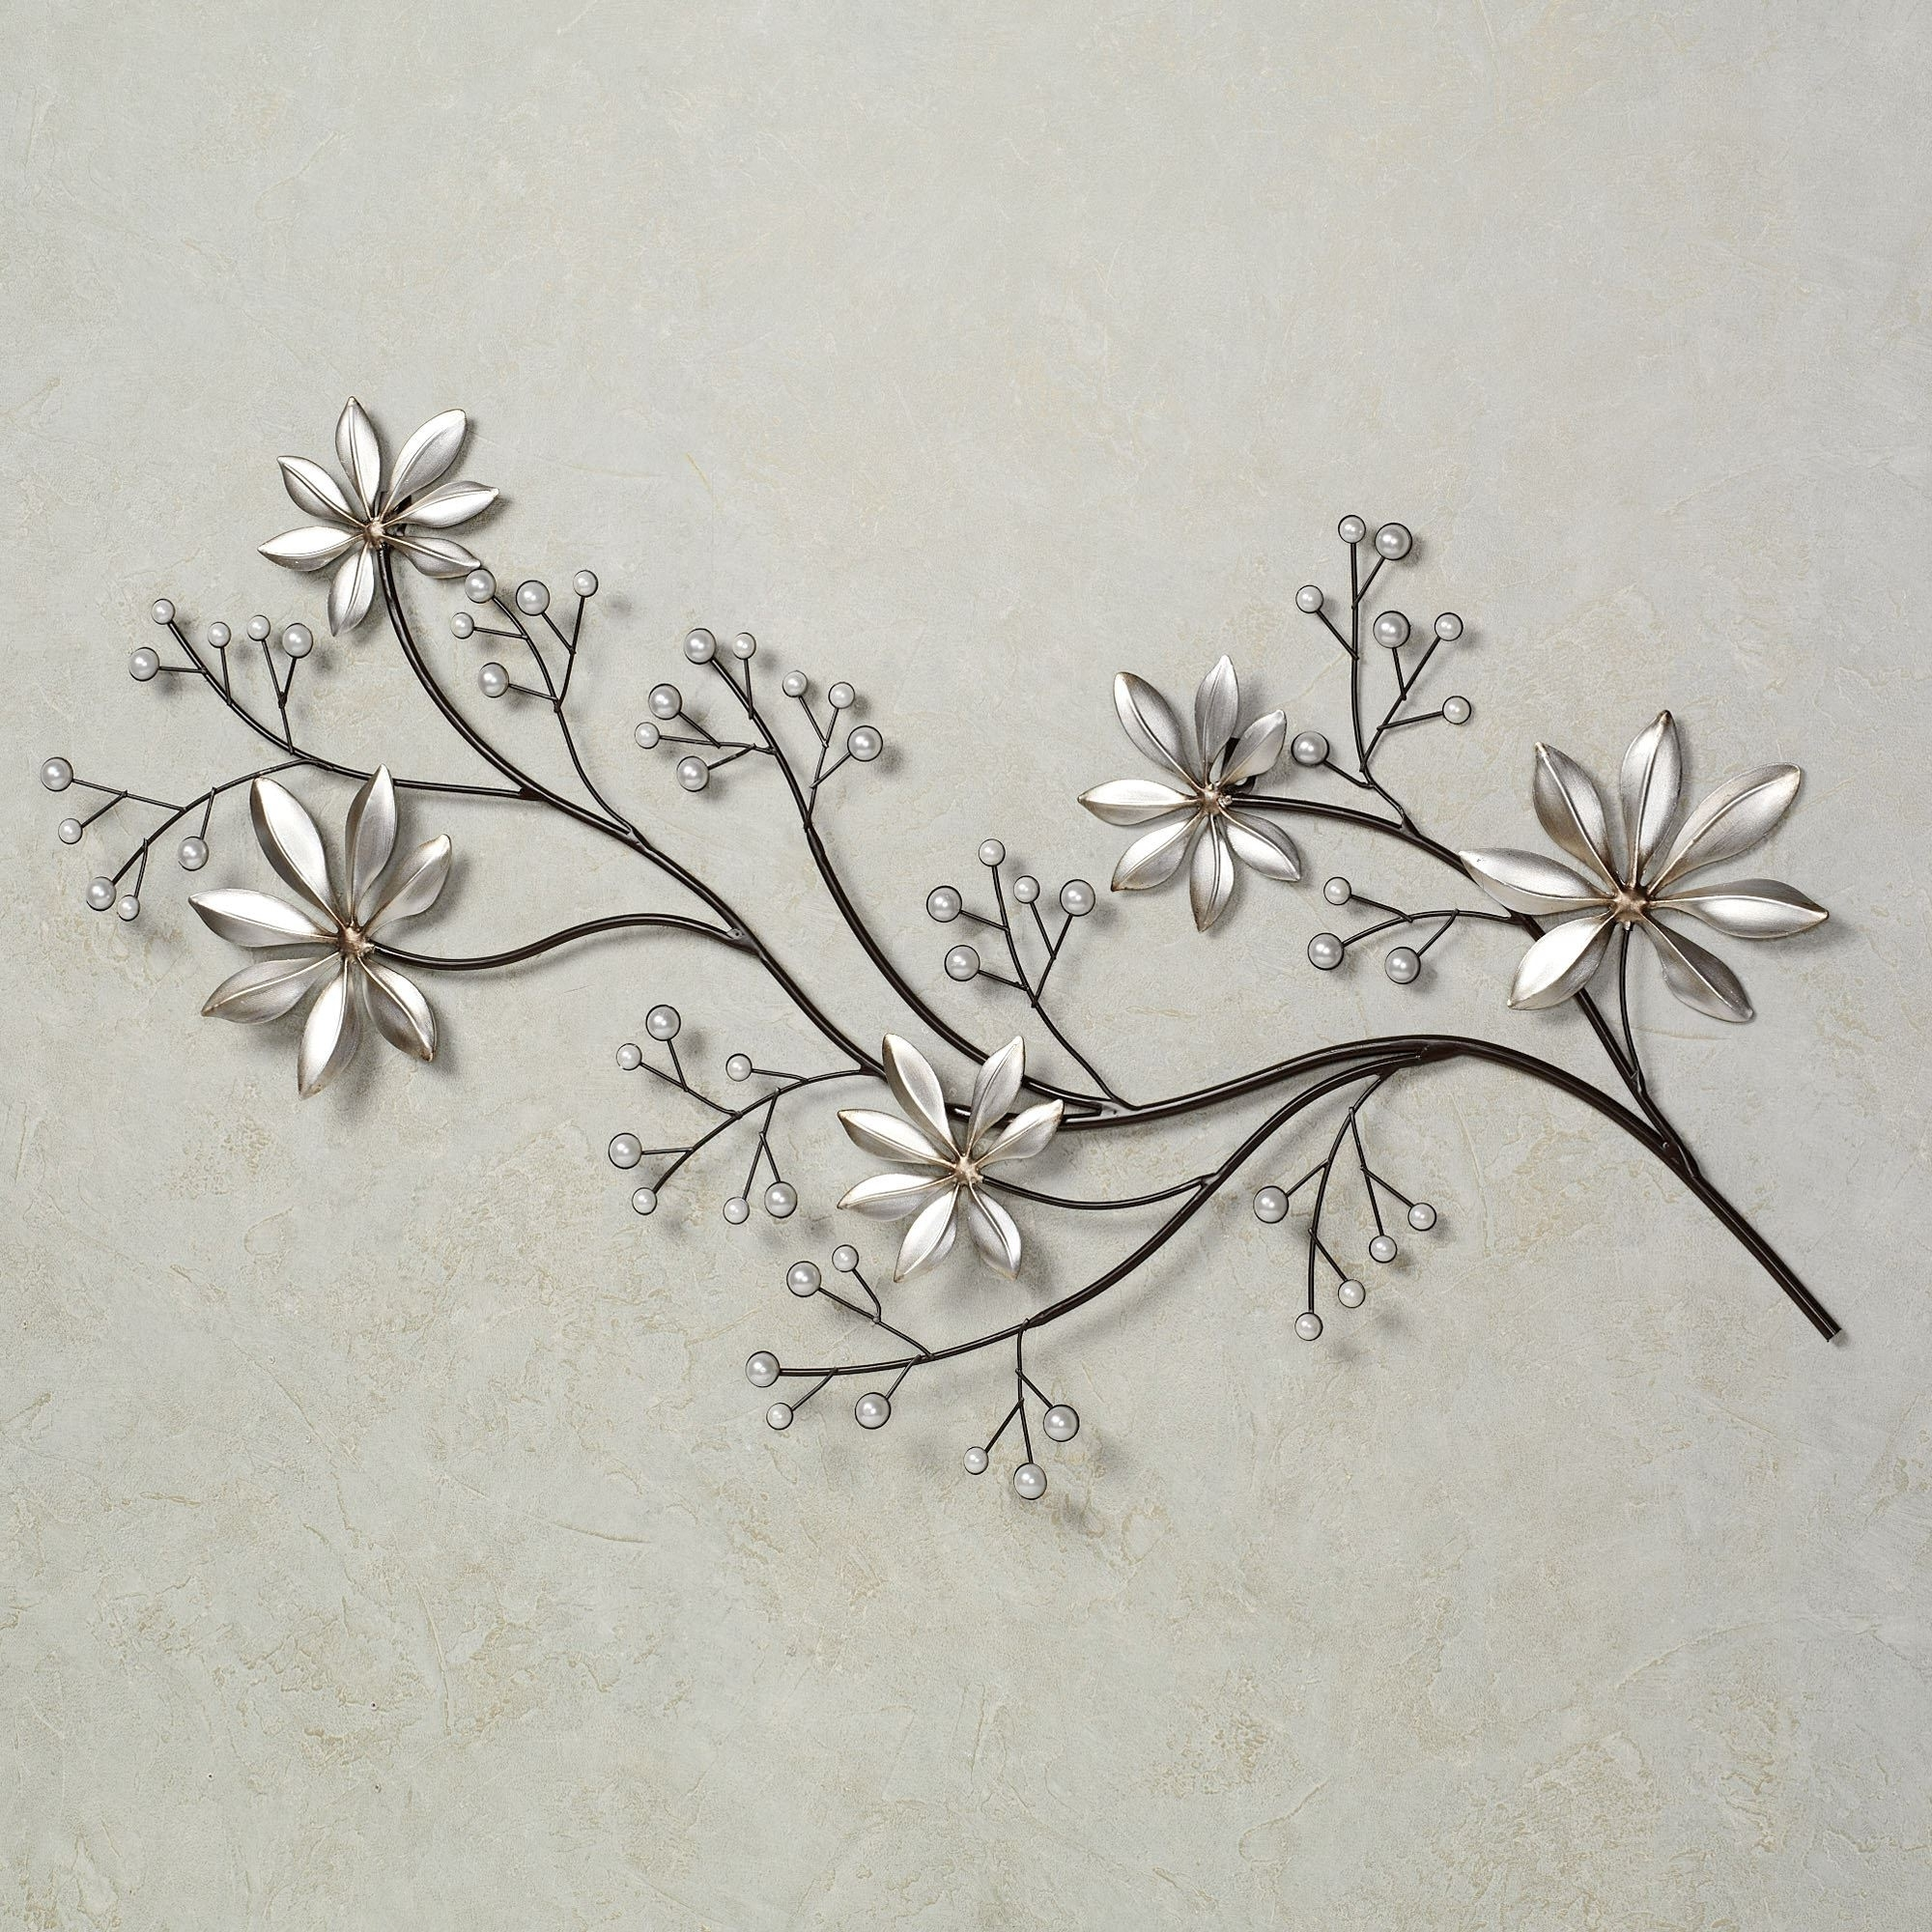 Famous Red Flower Metal Wall Art Inside Staggering Floral Metal Wall Art Sculptures Red Flower Design (View 6 of 15)